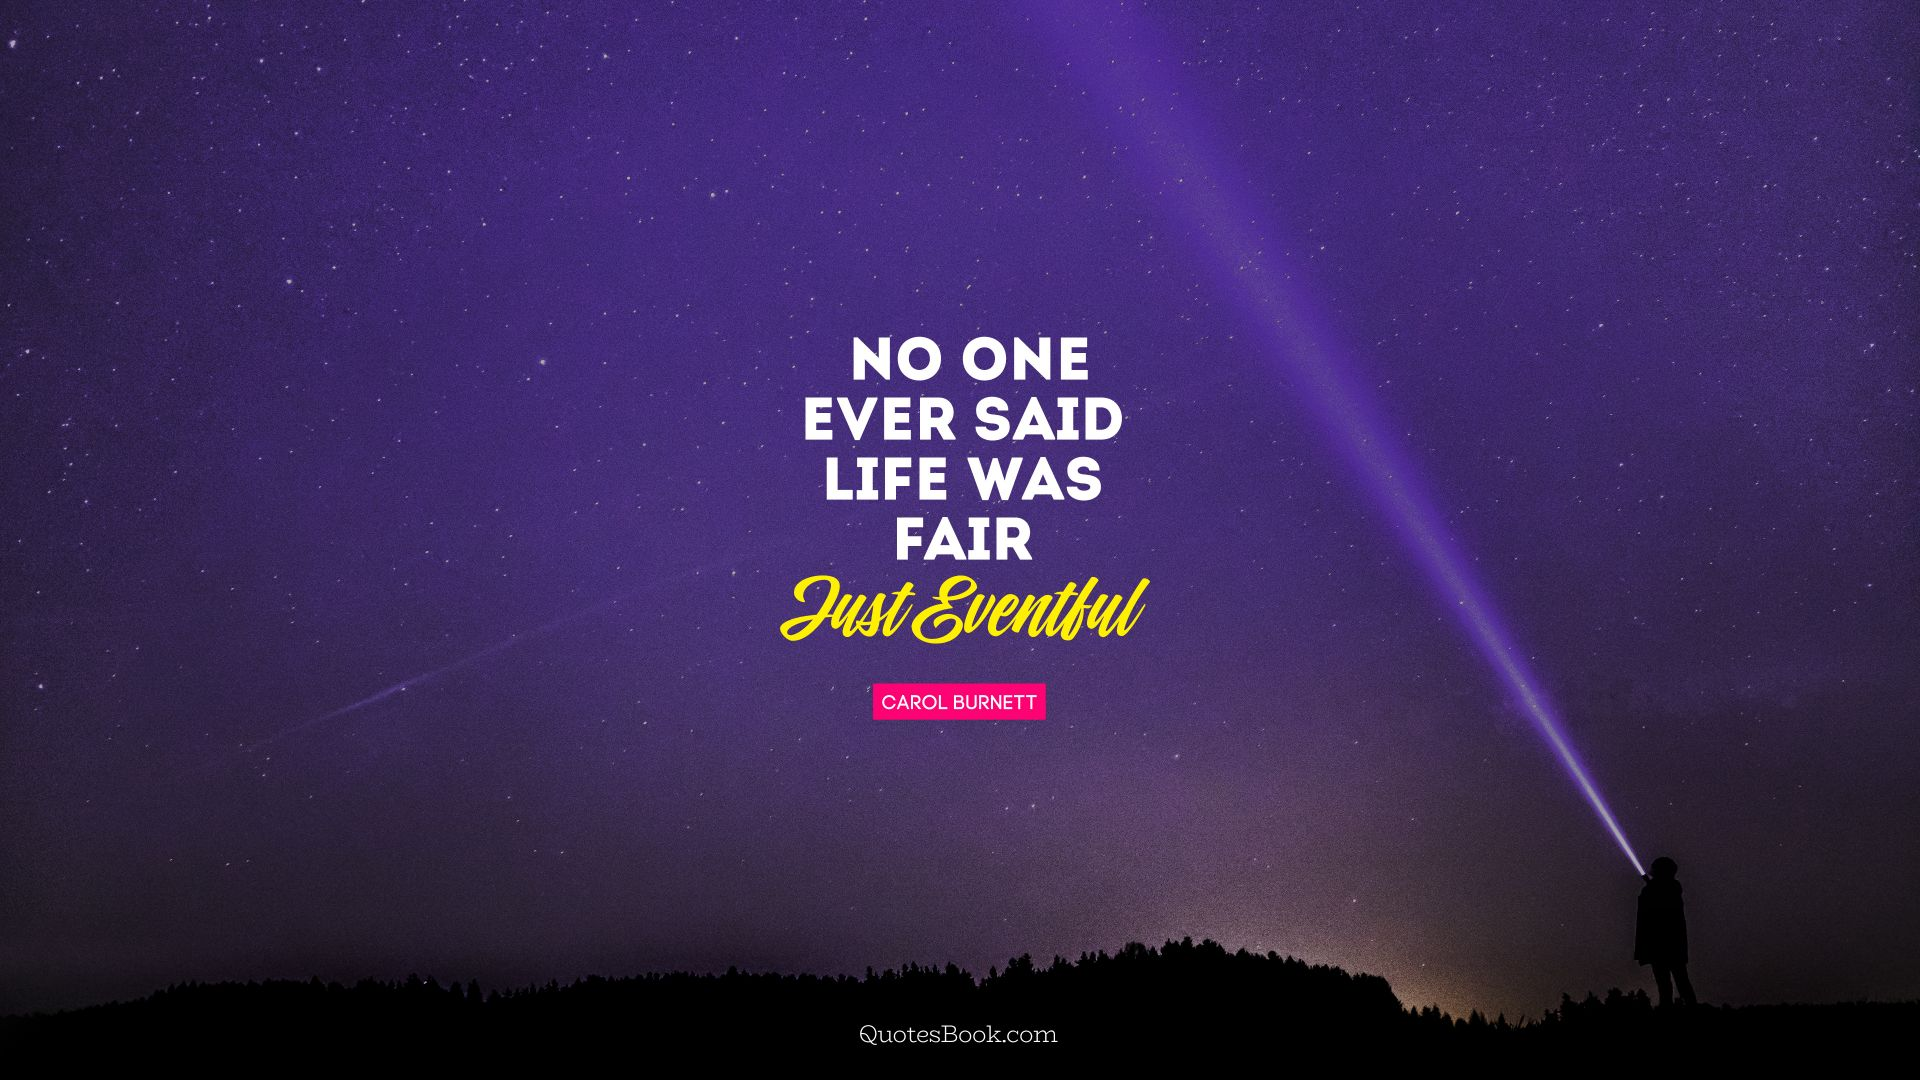 No one ever said life was fair. Just Eventful. - Quote by Carol Burnett